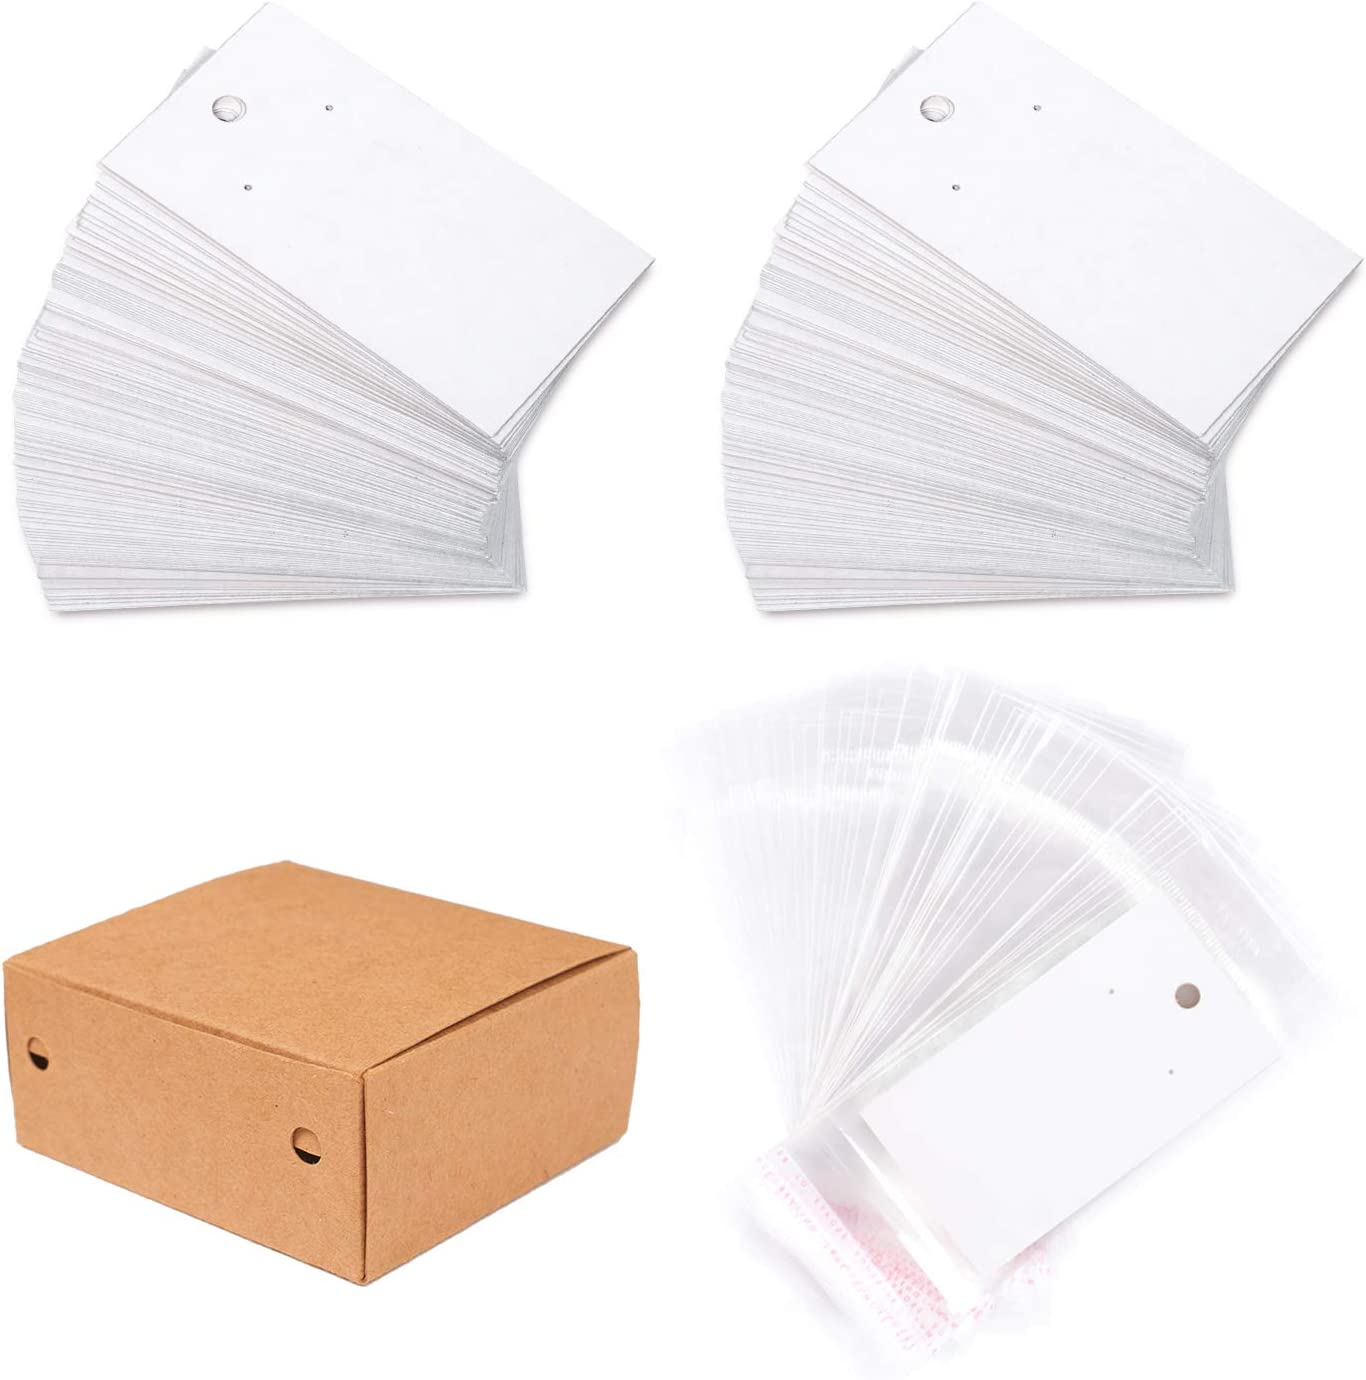 Earring Jewelry Display DIY Cards with Self Adhesive Bags White 5 /× 9 cm 100 Pcs